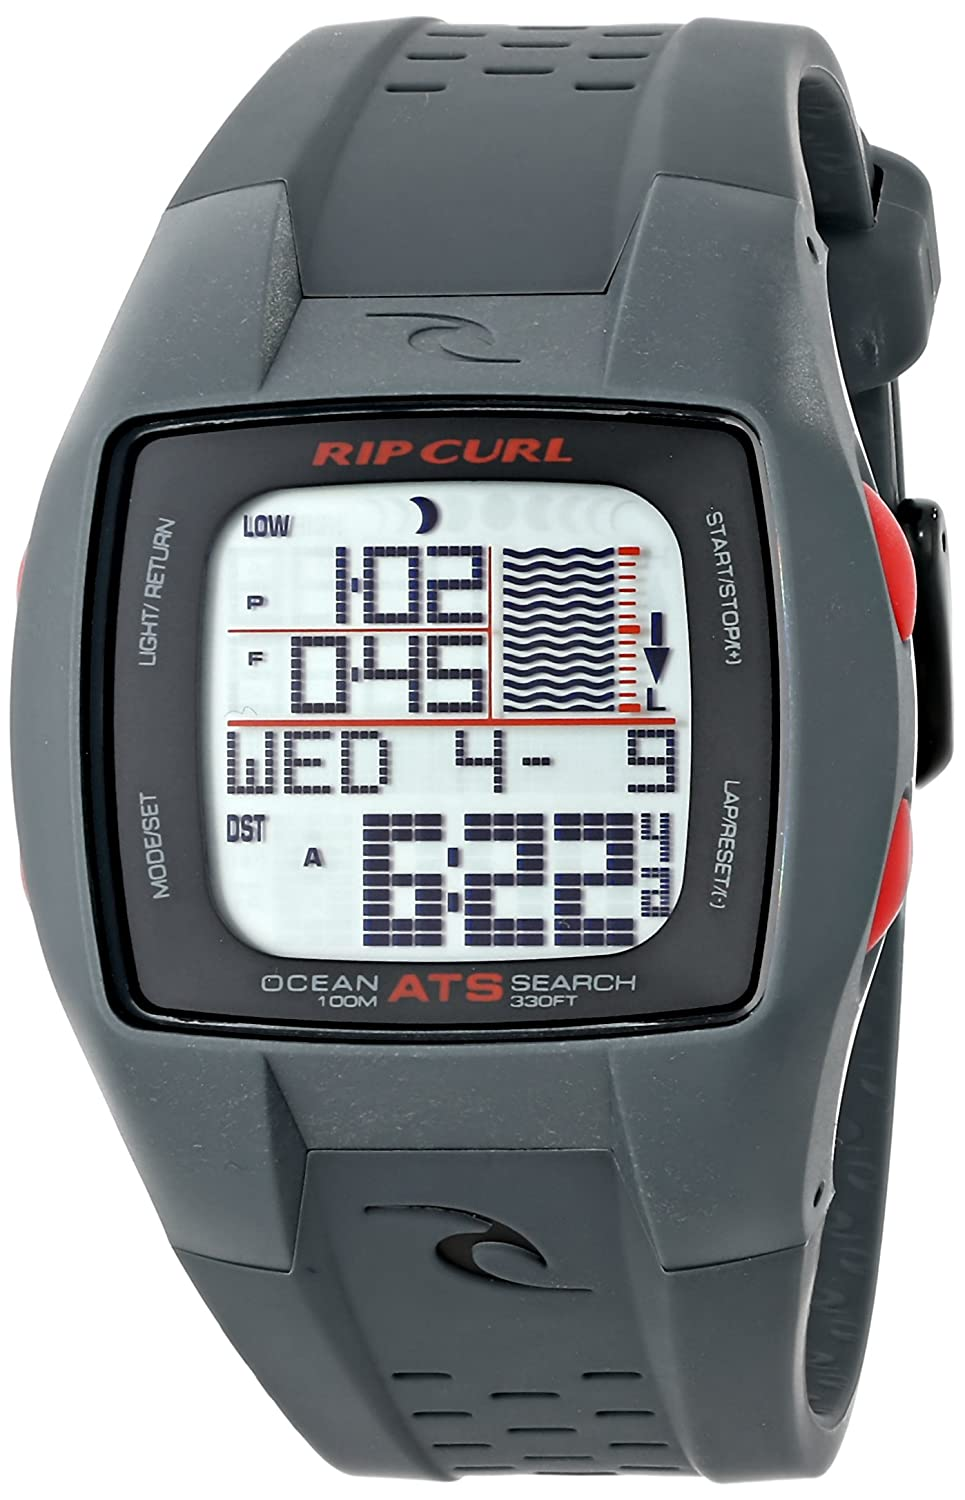 Rip Curl Men's A1015 Trestles Oceansearch Surf Watch with Grey Band велосипед bulls night hawk 3 2017